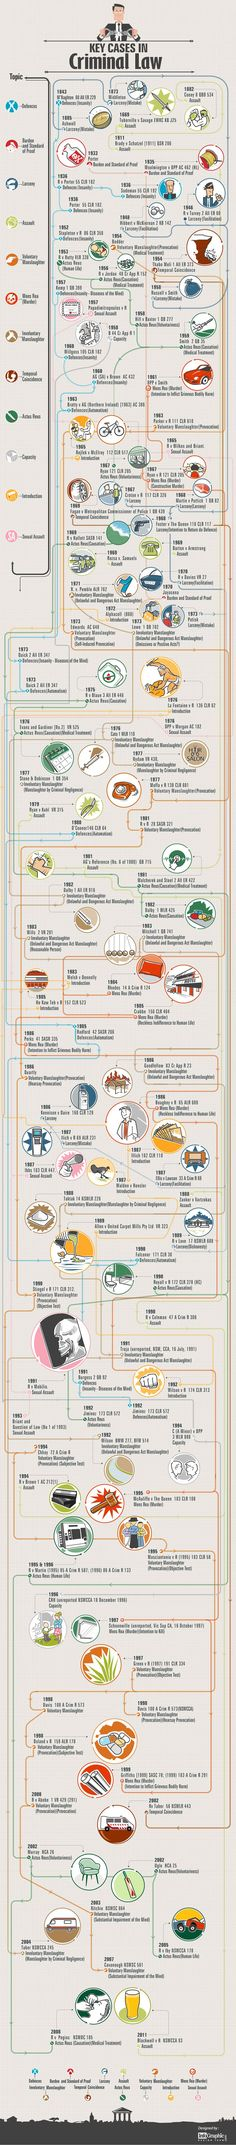 Infographic on Key Cases In Criminal Law